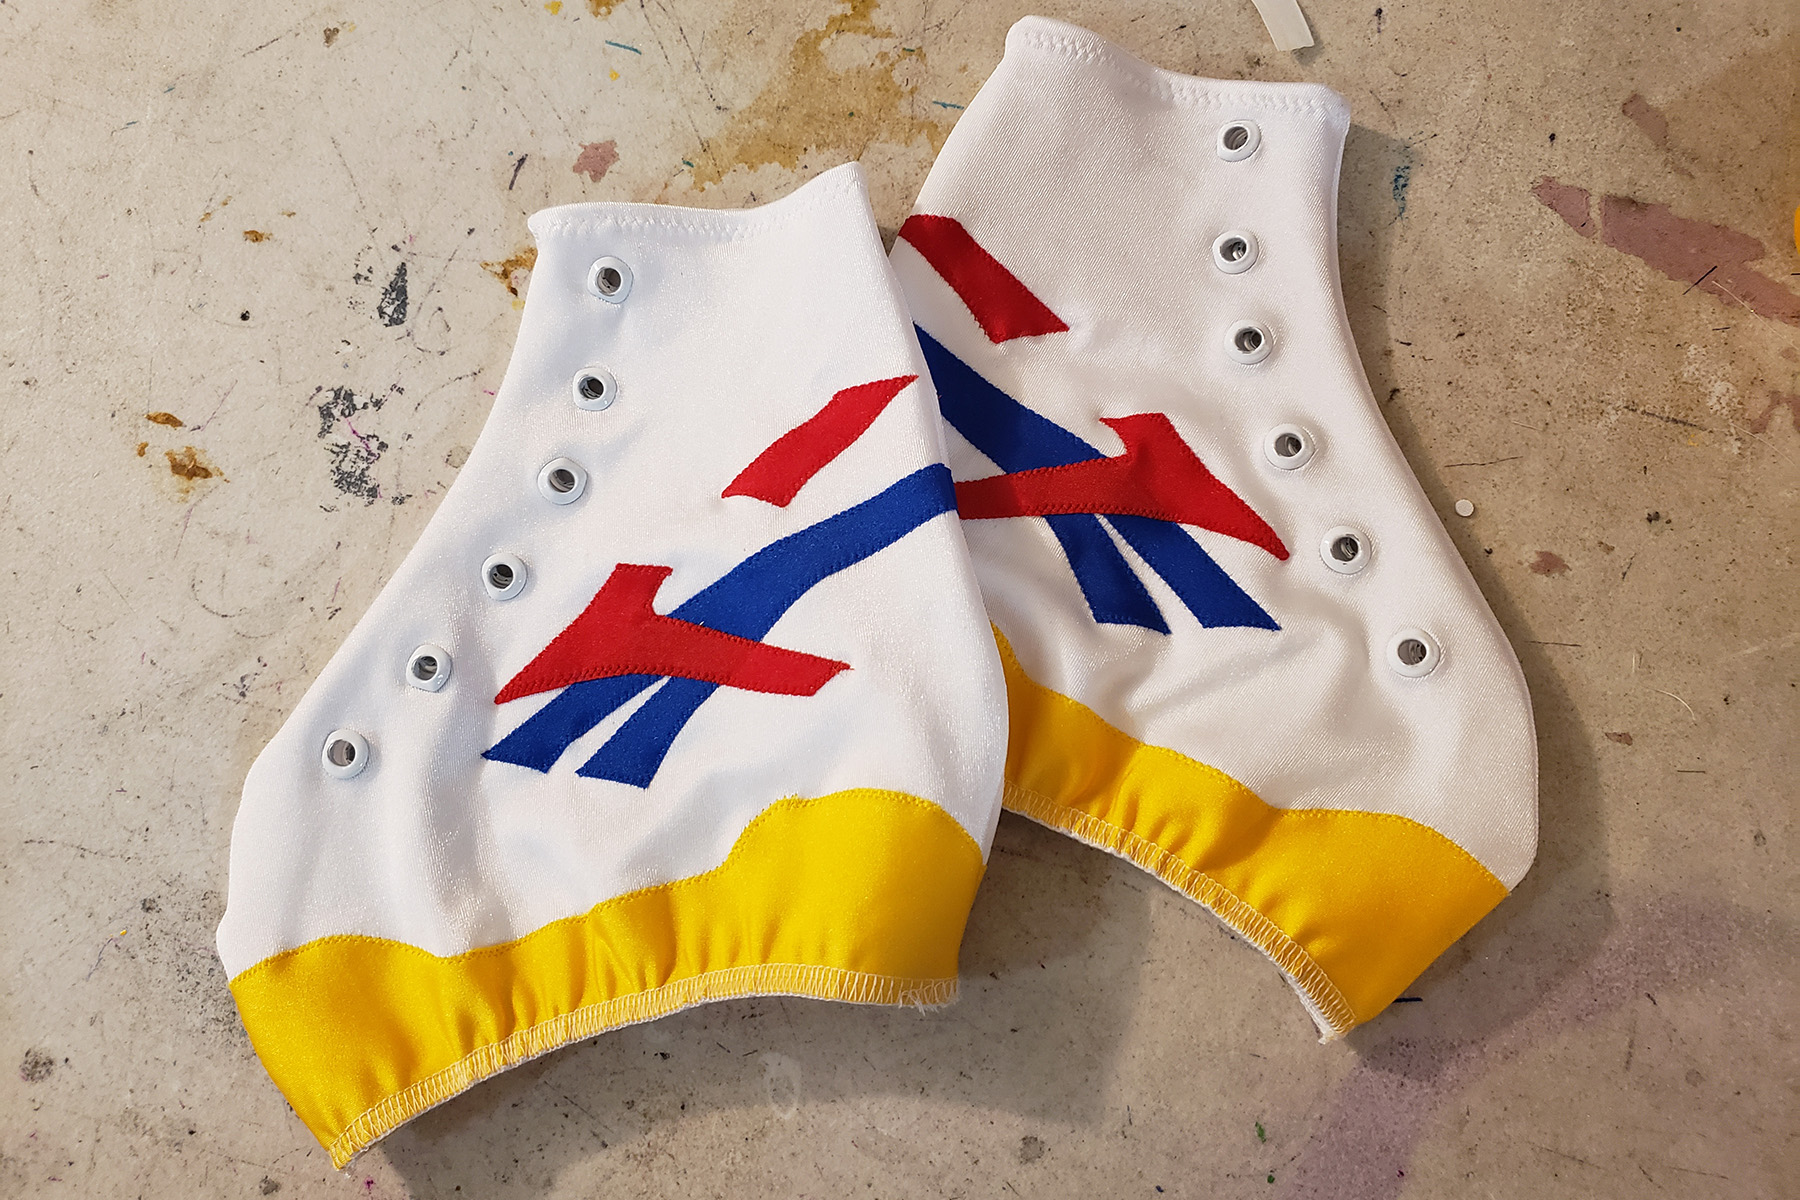 A pair of custom skate covers, made to look like sneakers. They are white, with accents of yellow, red, and blue.